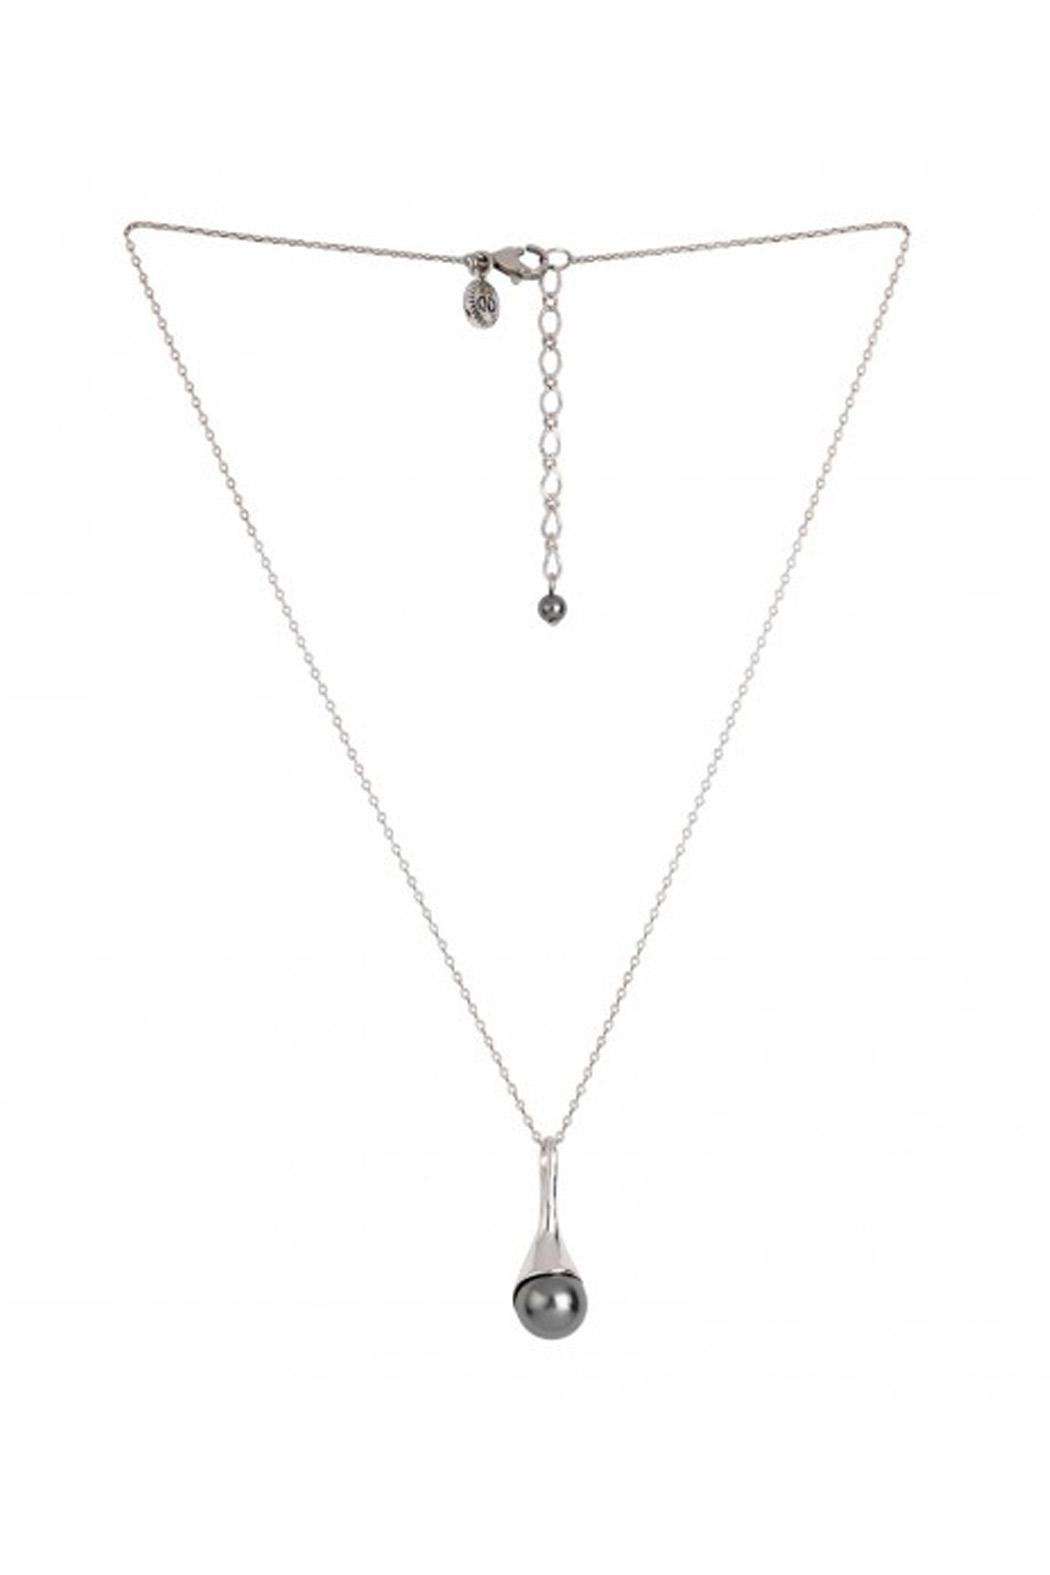 Caroline Neron Grey Pearl Necklace - Front Cropped Image